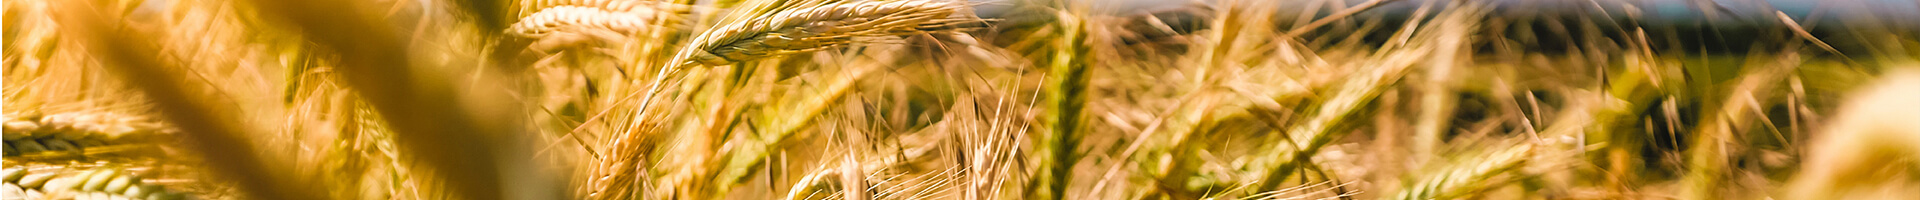 Header image - field of wheatgrass